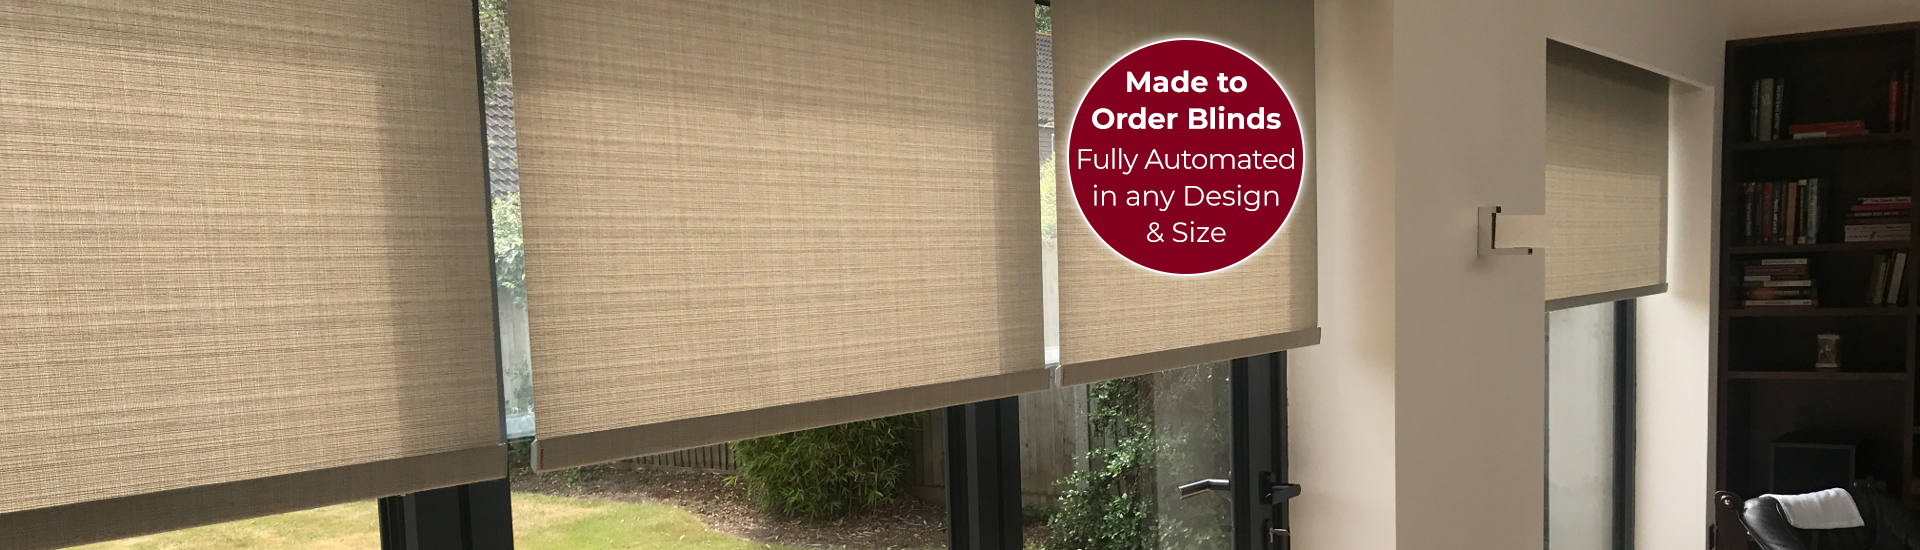 Electric Roller Blinds with Sticker